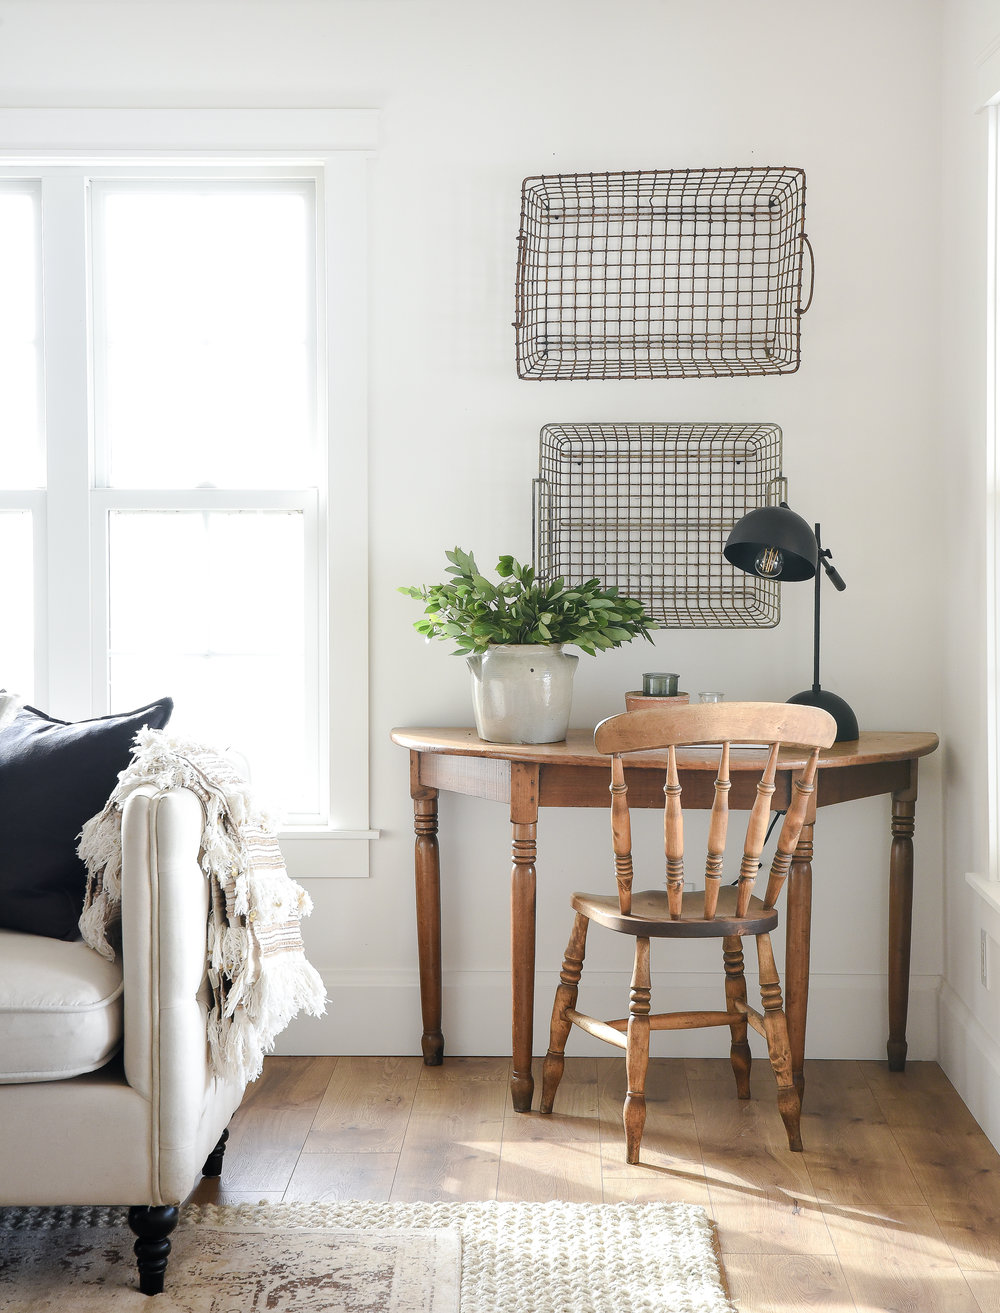 Farmhouse living room with antique wood desk and chair and vintage french oyster baskets next to layered rugs with crisp white walls. #farmhousedecor #farmhousestyle #livingroomdecor